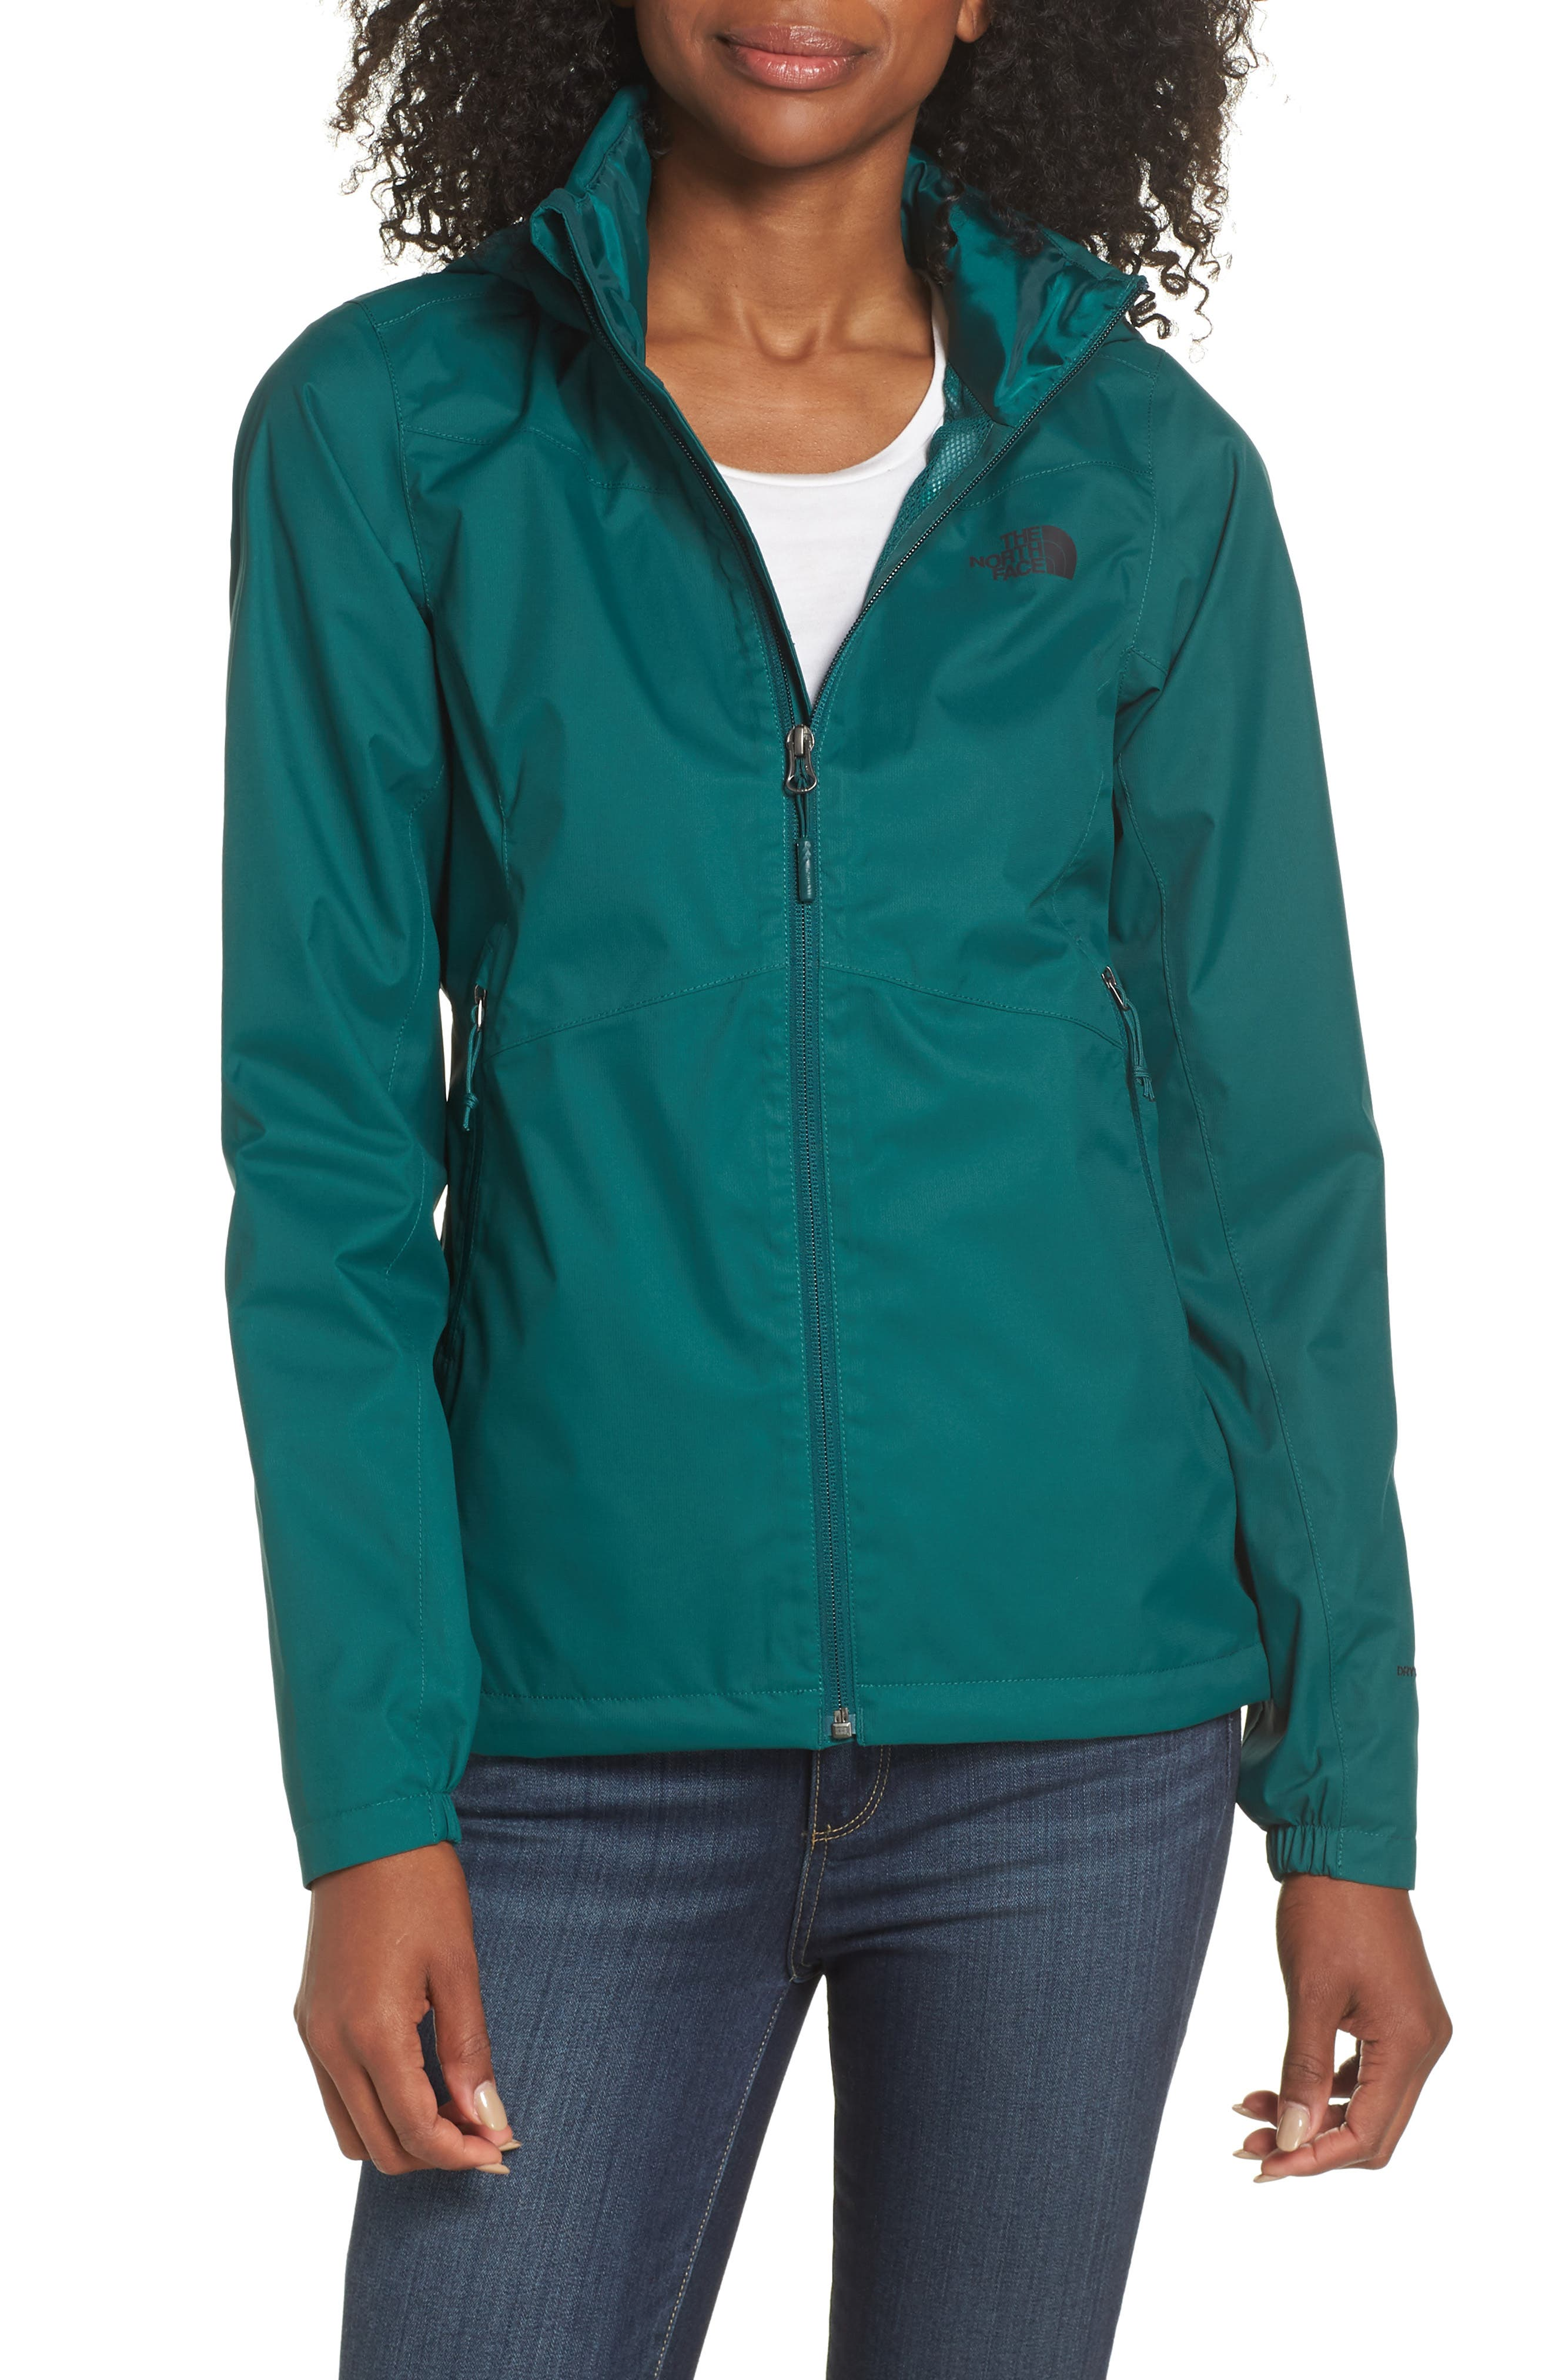 THE NORTH FACE Resolve Plus Waterproof Jacket, Main, color, 301